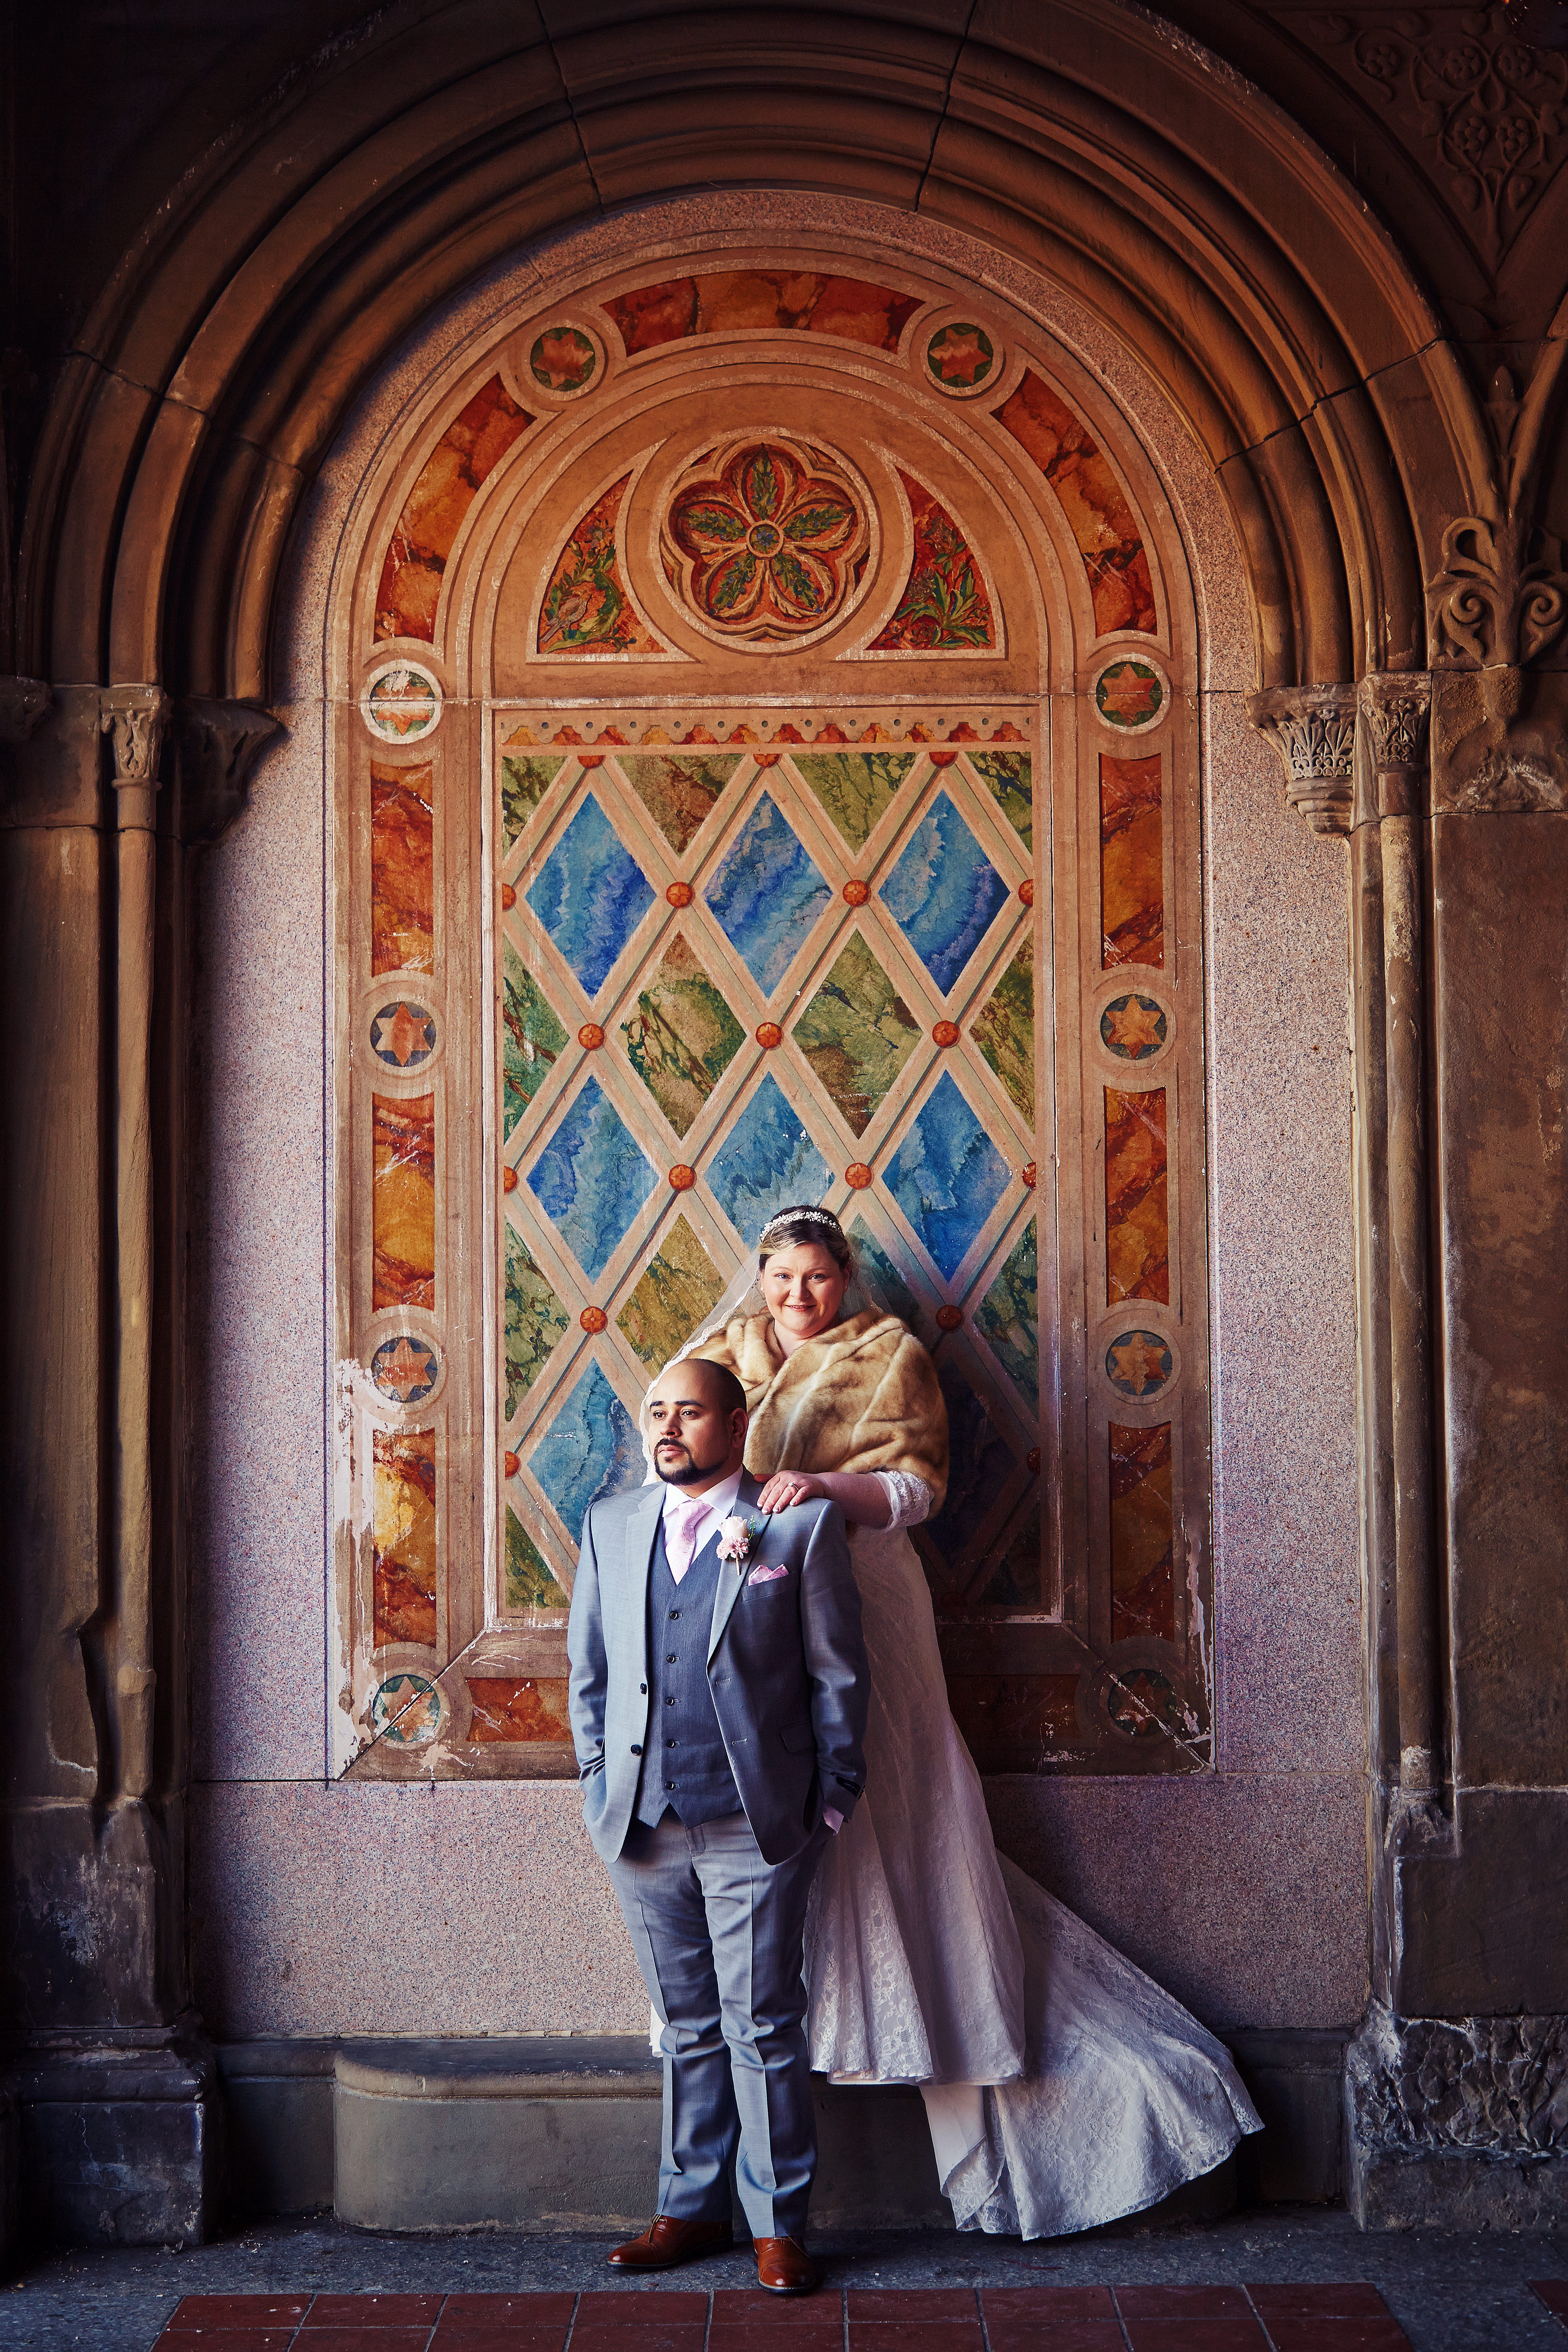 Artistic Wedding Photographers in NYC, wedding videographer pictures, massachusetts wedding, rustic wedding videographer, wedding videographer usa, professional videographer boston ma, recommended wedding videographers, engagement videographer boston ma, wedding videographer guide, wedding videographer photos, boston portrait studio, wedding videographer camera, fashion wedding videographer, photojournalistic wedding videographers, new wedding videographer, portrait studio boston ma, country wedding photos, springfield wedding videographers, wedding outdoor photos, rustic wedding videographers, professional videographer wedding, digital wedding videographer, country wedding videographer, wedding videographer berlin, journalistic wedding videographer, small wedding videographer prices, vermont wedding videographer, discount wedding videographer, rhode island videographer, chicagoland wedding videographer, samantha wedding photos, rustic wedding photos, riverside wedding videographers, top wedding videographer, dfw wedding videographer, popular wedding videographers, wedding videographer berlin, great wedding videographers, funny wedding videographer, great wedding videographer, new hampshire wedding videographer, wedding videographer Washington, new wedding videographers, expensive wedding videographers, rhode island wedding, classic wedding videographer, kentucky wedding videographer, boston architectural videographer, wedding videographer Chelmsford, portrait studio boston, wedding videographer Burlington, celebrity wedding videographer, wedding portrait videographer, elegant wedding videographer, wild wedding photos, questions for wedding videographer, best wedding videographer in usa, professional portraits boston,